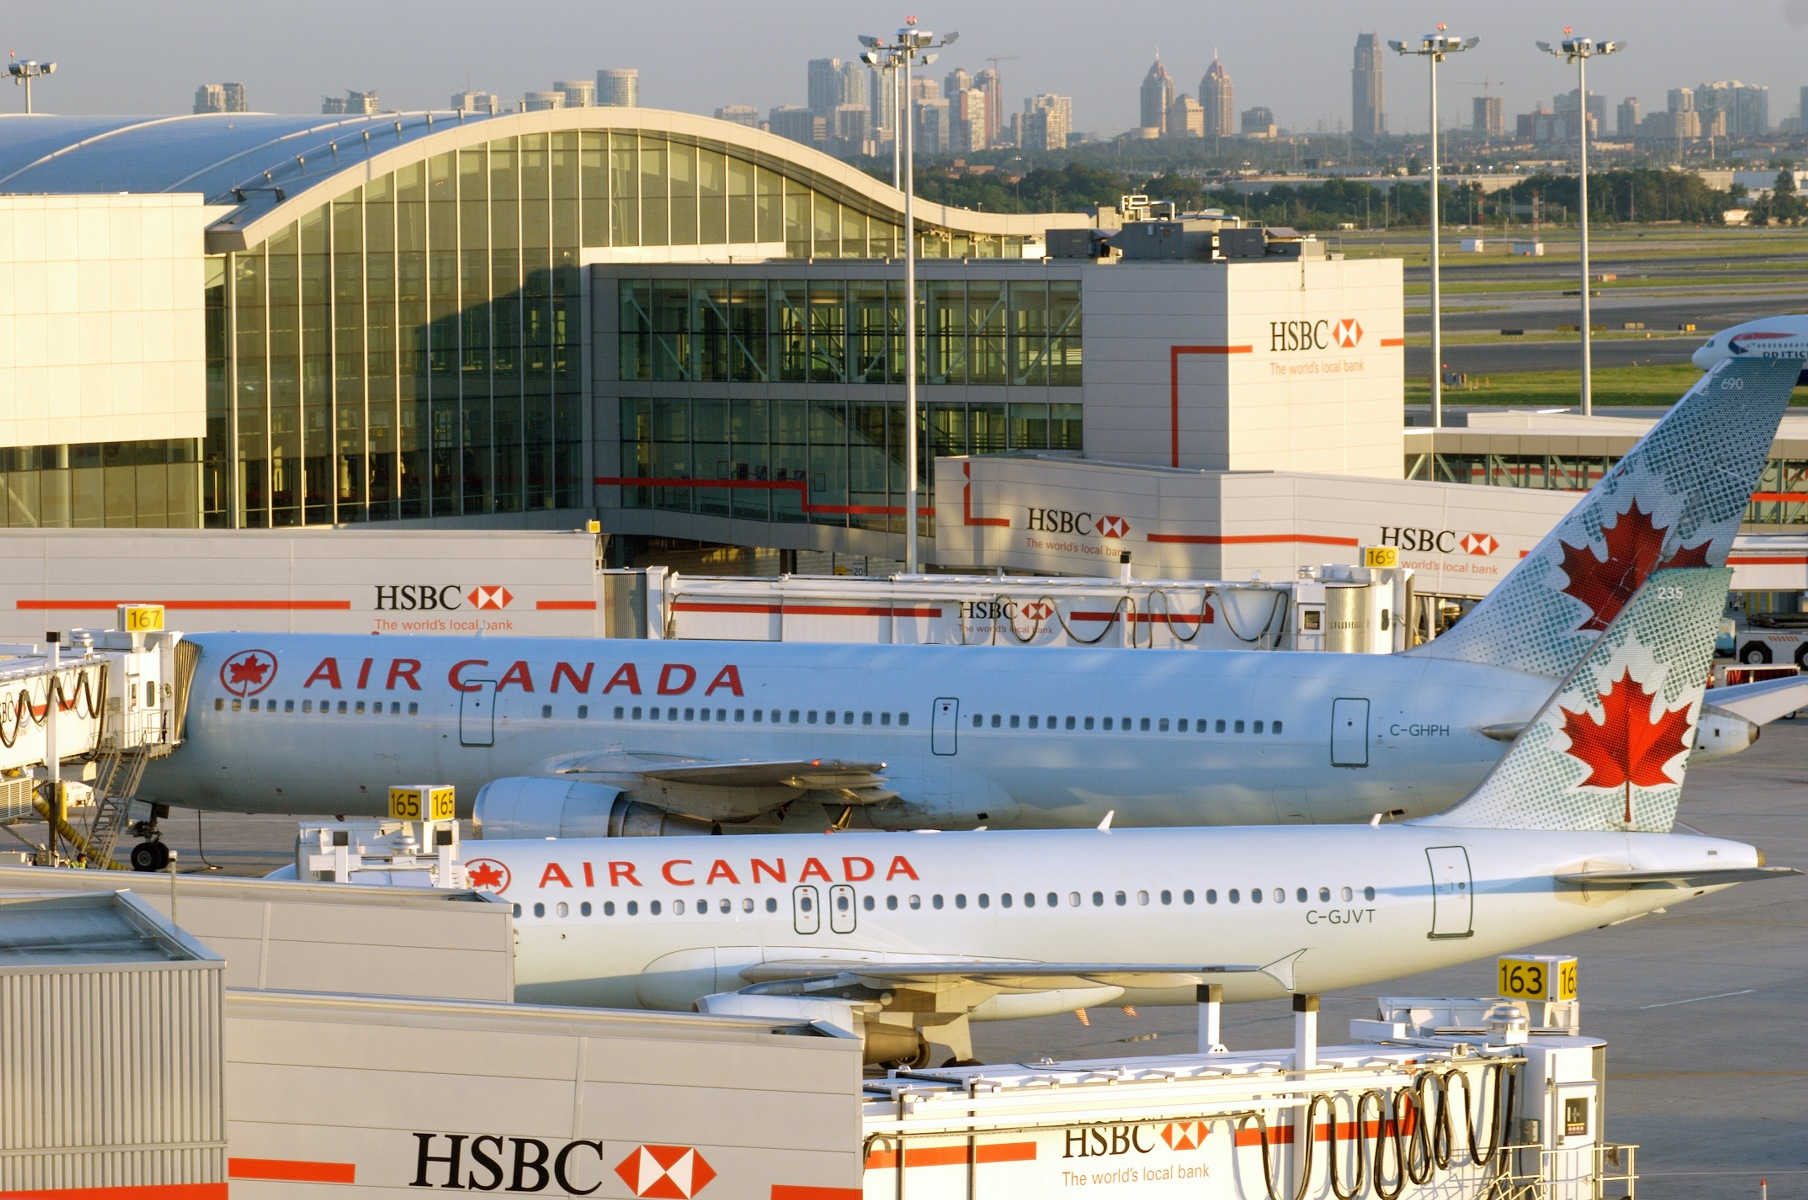 Toronto Pearson airport named best large airport in North America for customer service